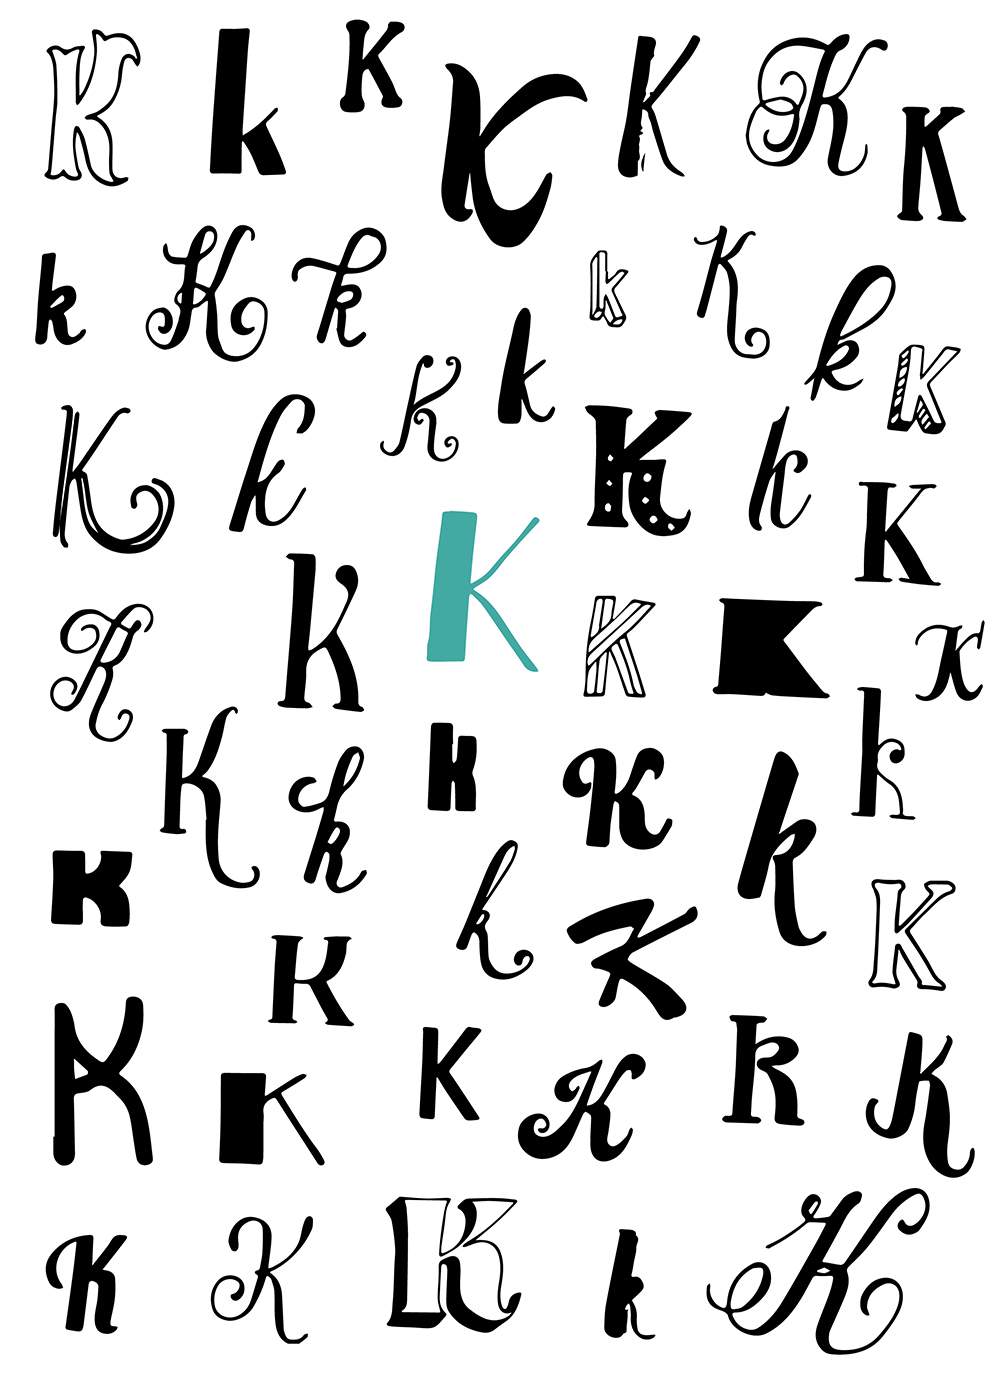 Alphabet_Exploration-11.jpg